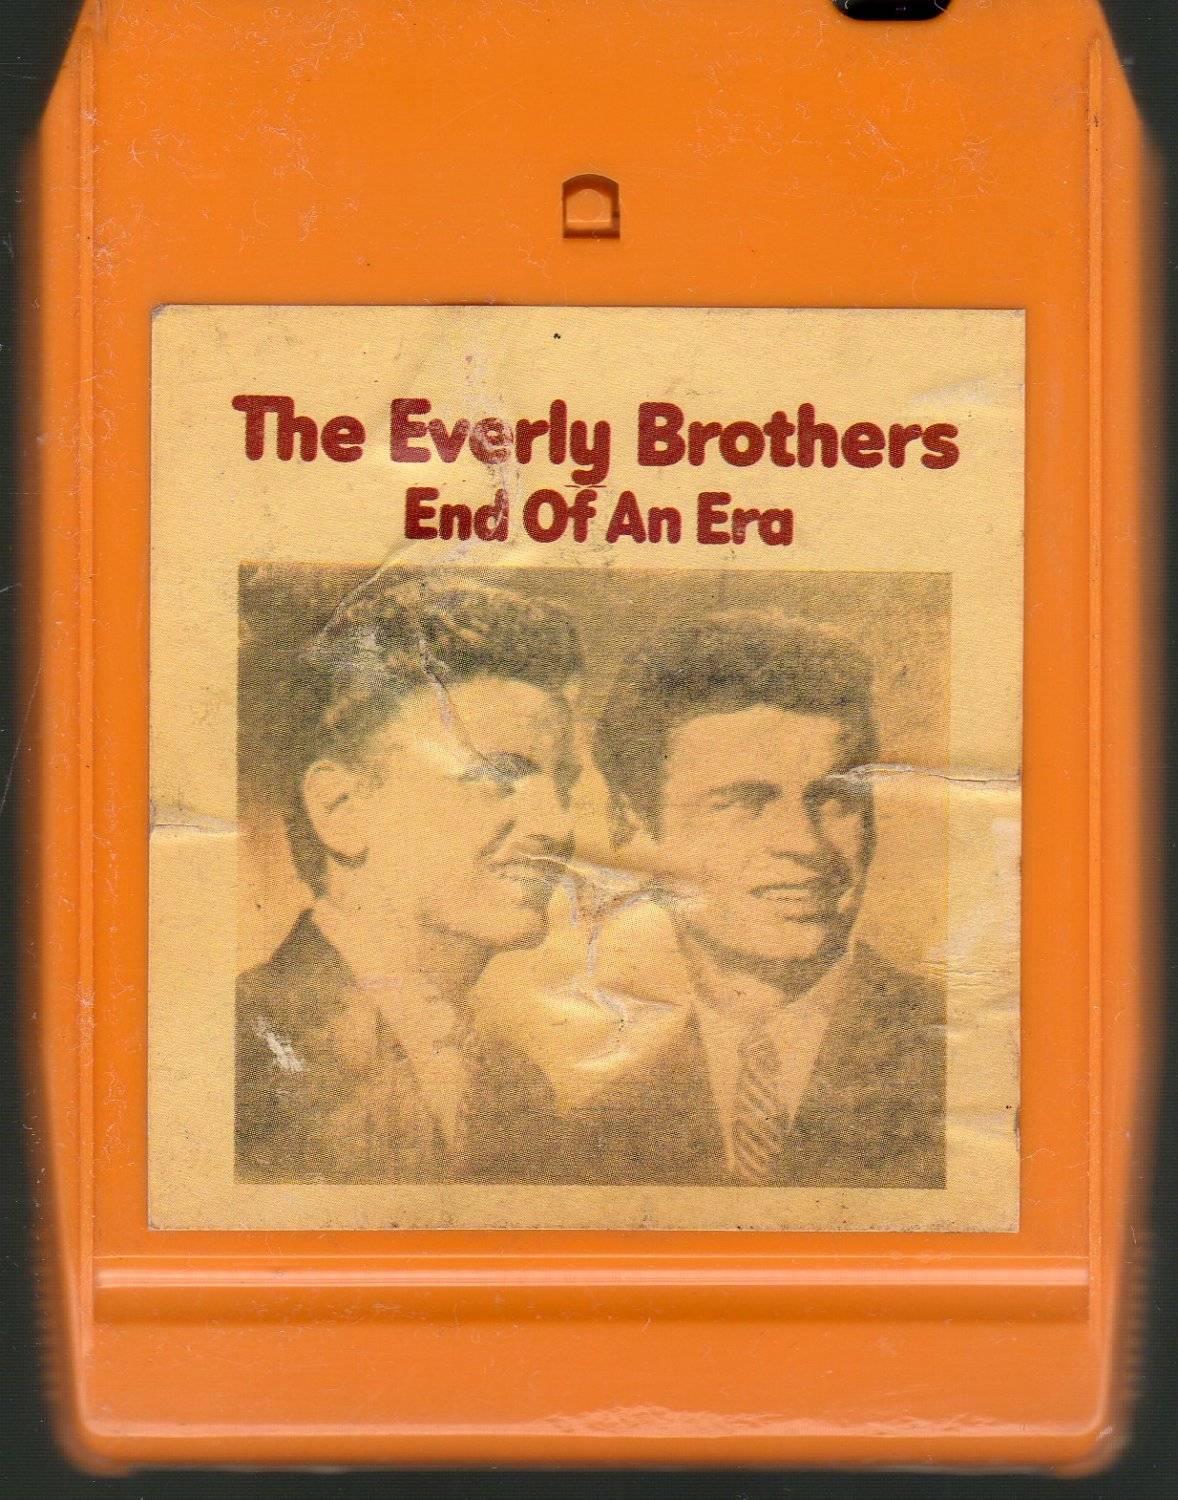 The Everly Brothers - End Of An Era 8-track tape